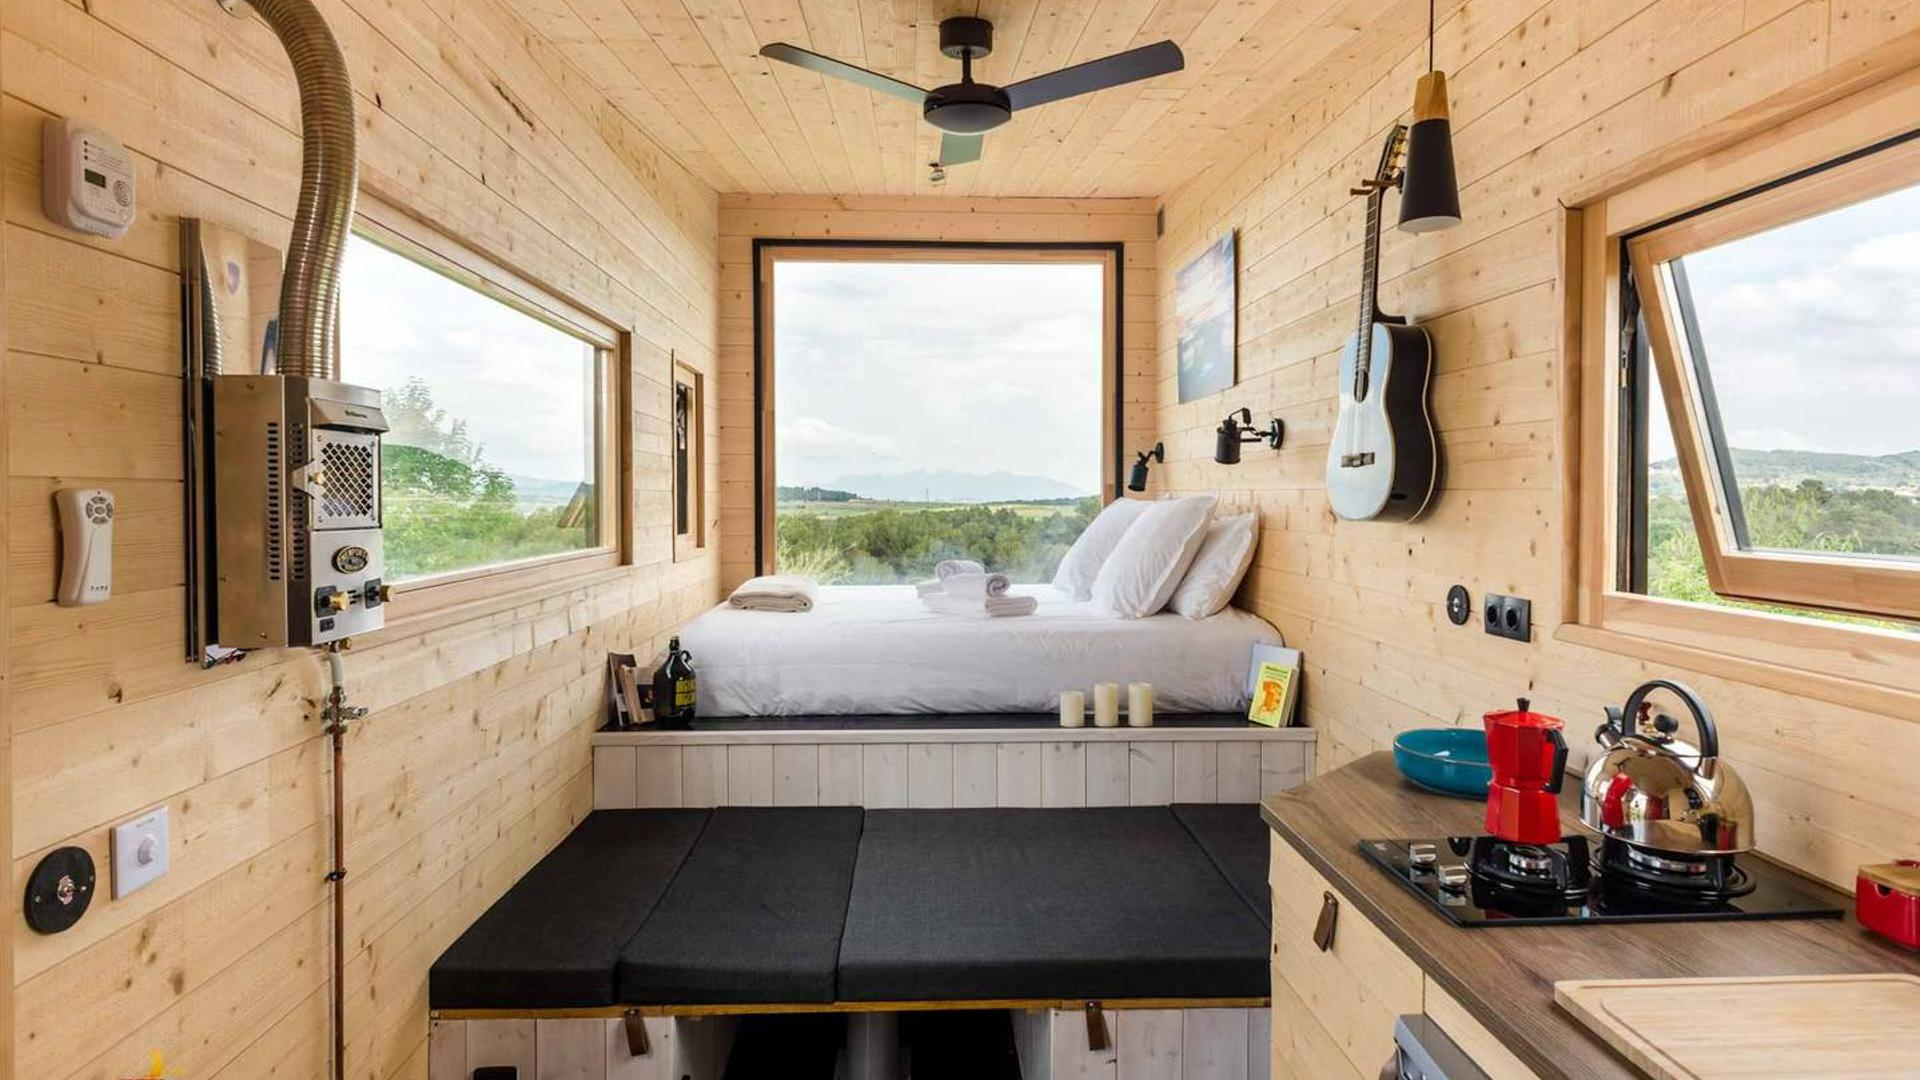 We Found 5 Magical Tiny Homes On Airbnb You Should Book Right Now